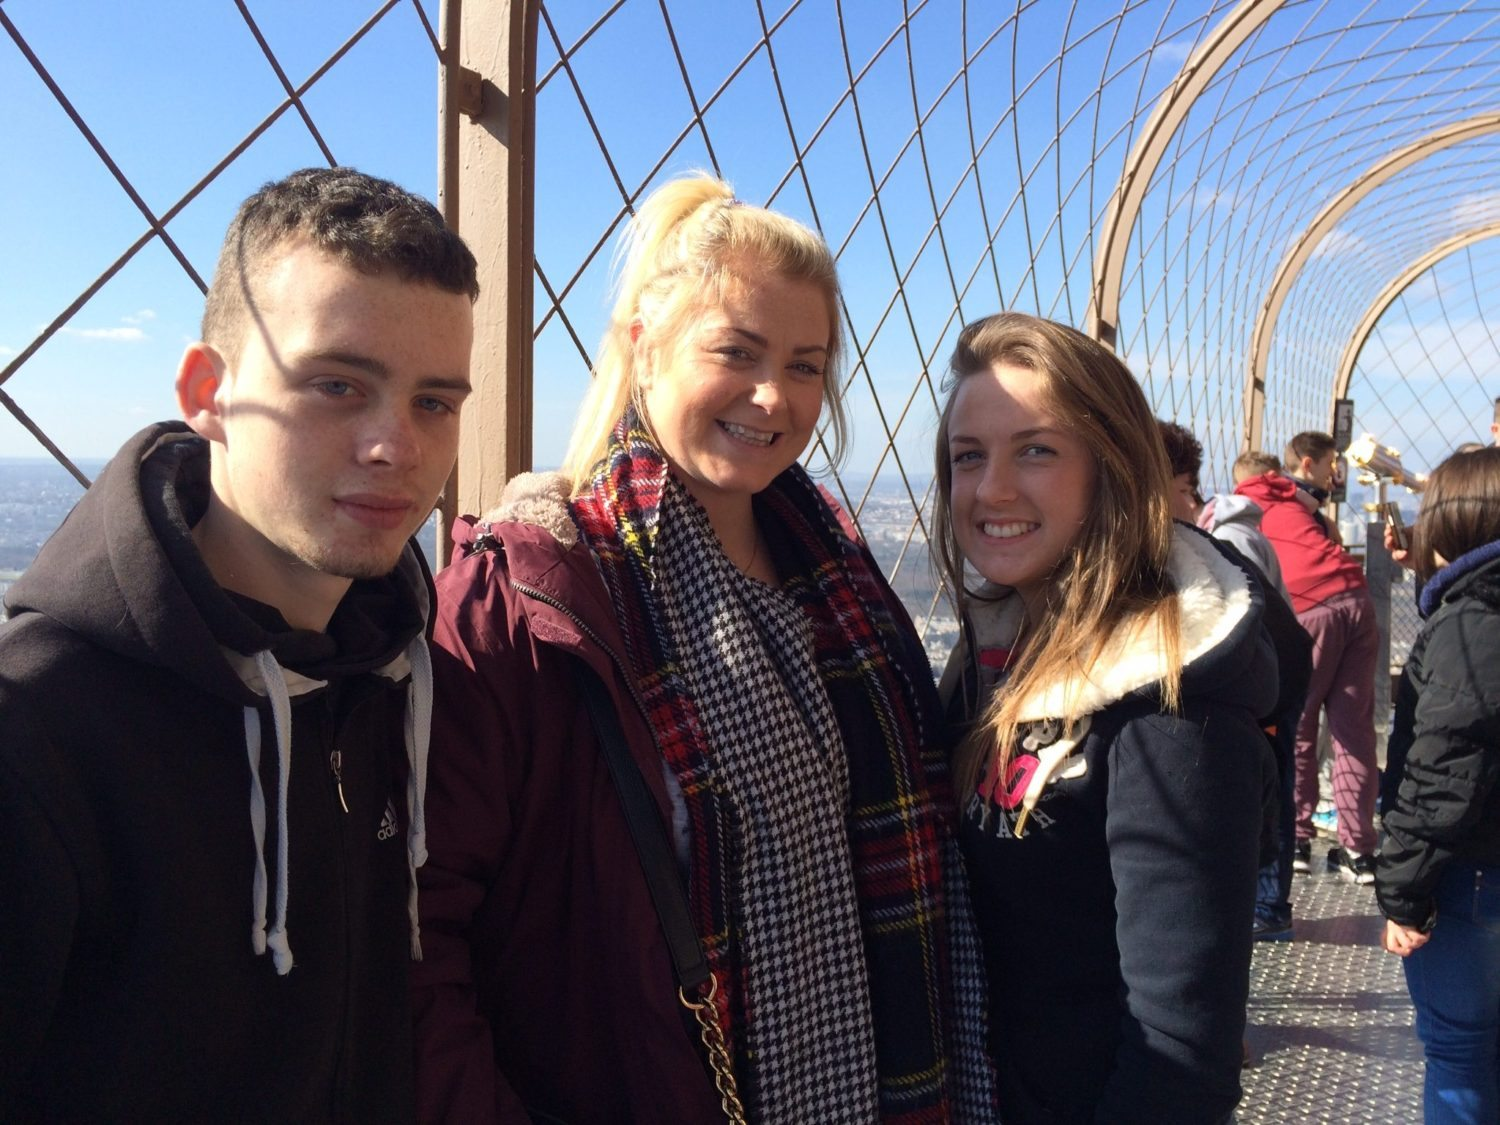 Paul Moroney, Ms Ryan and Aoife Larkin Enjoy the Signs on the Eiffel Tower